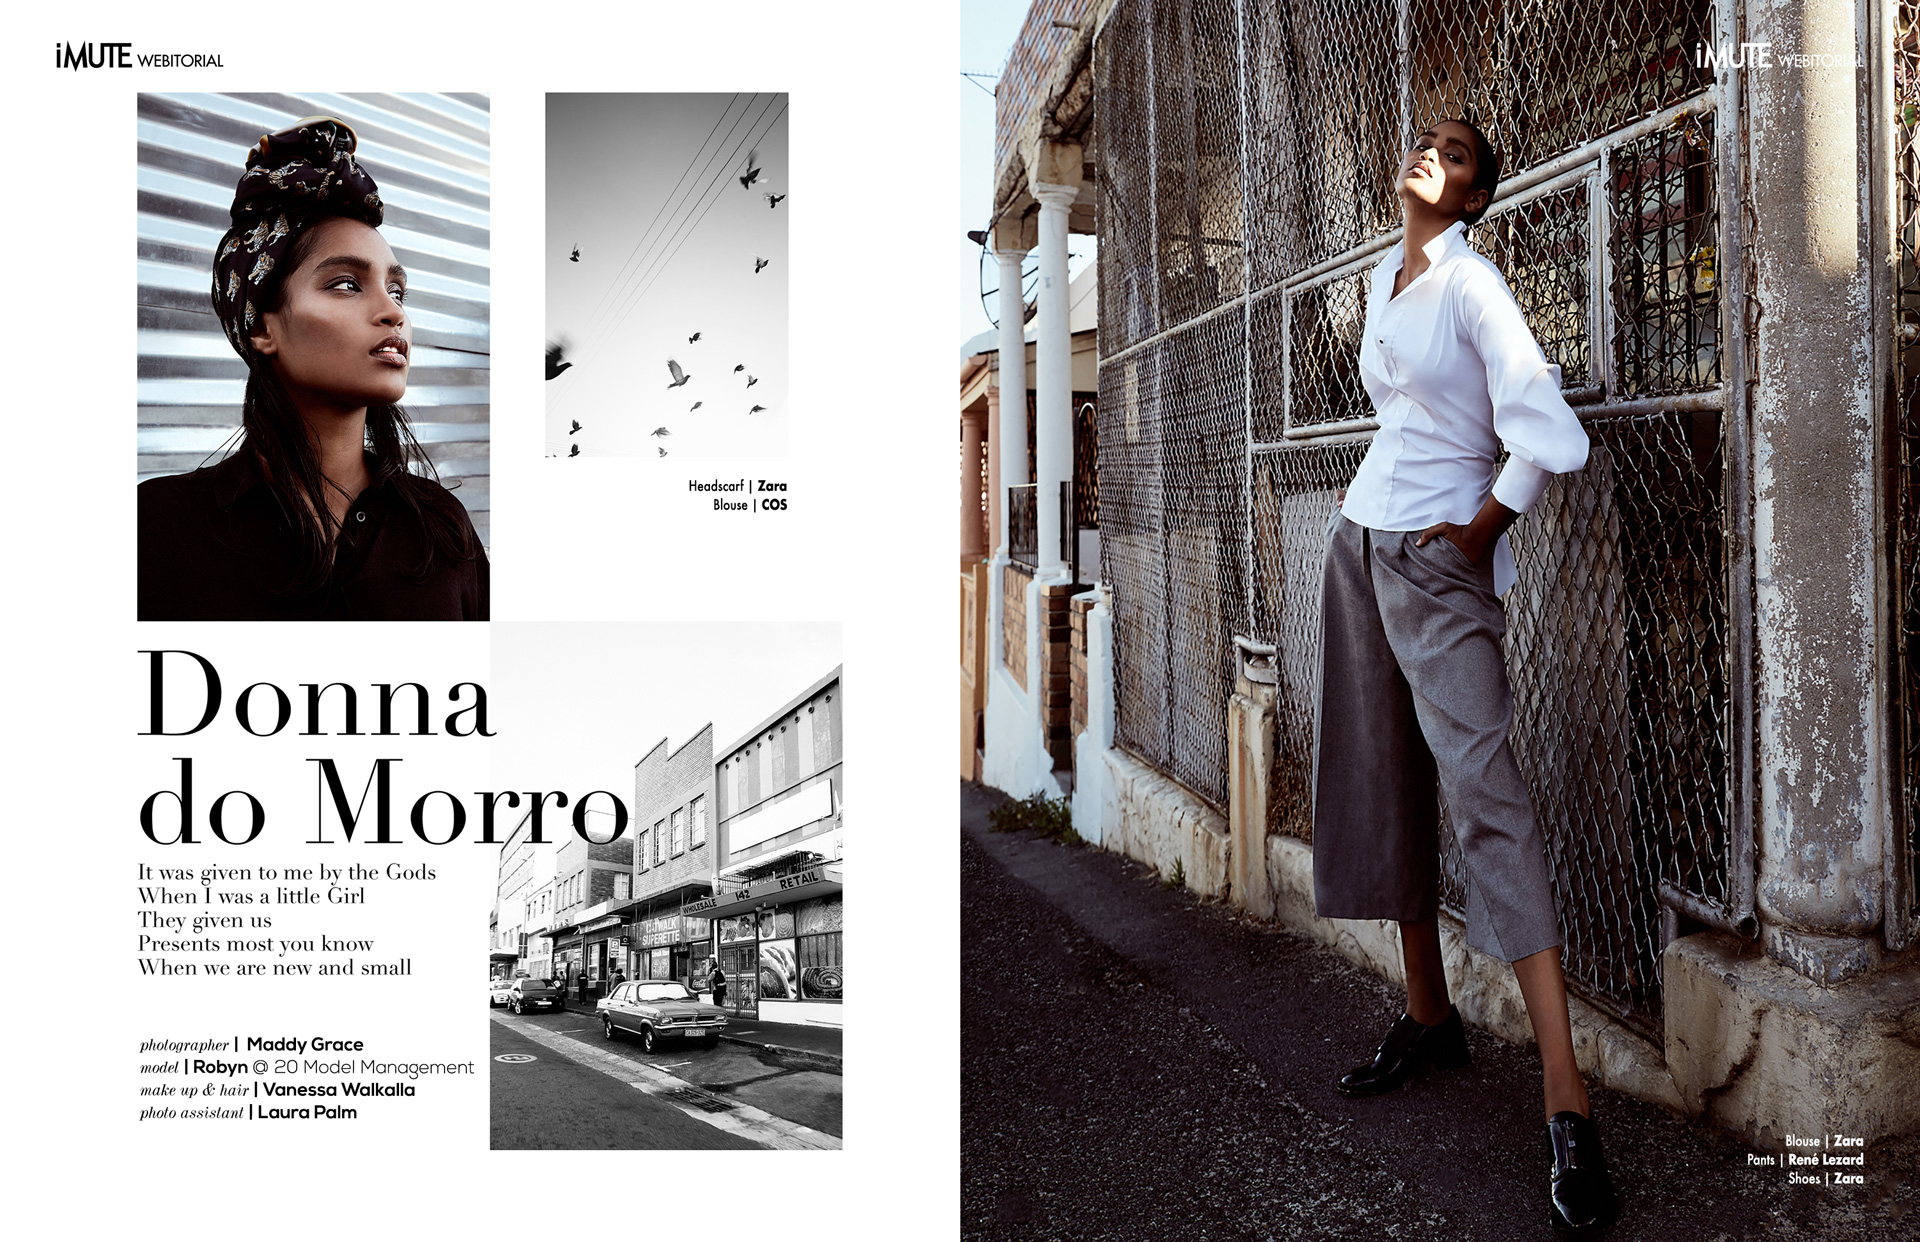 DONNA DO MORRO webitorial for iMute Magazine Photographer| Maddy Grace Model| Robyn @ 20 Model Management Makeup & Hair | Vanessa Walkalla Photo Assistant | Laura Palm